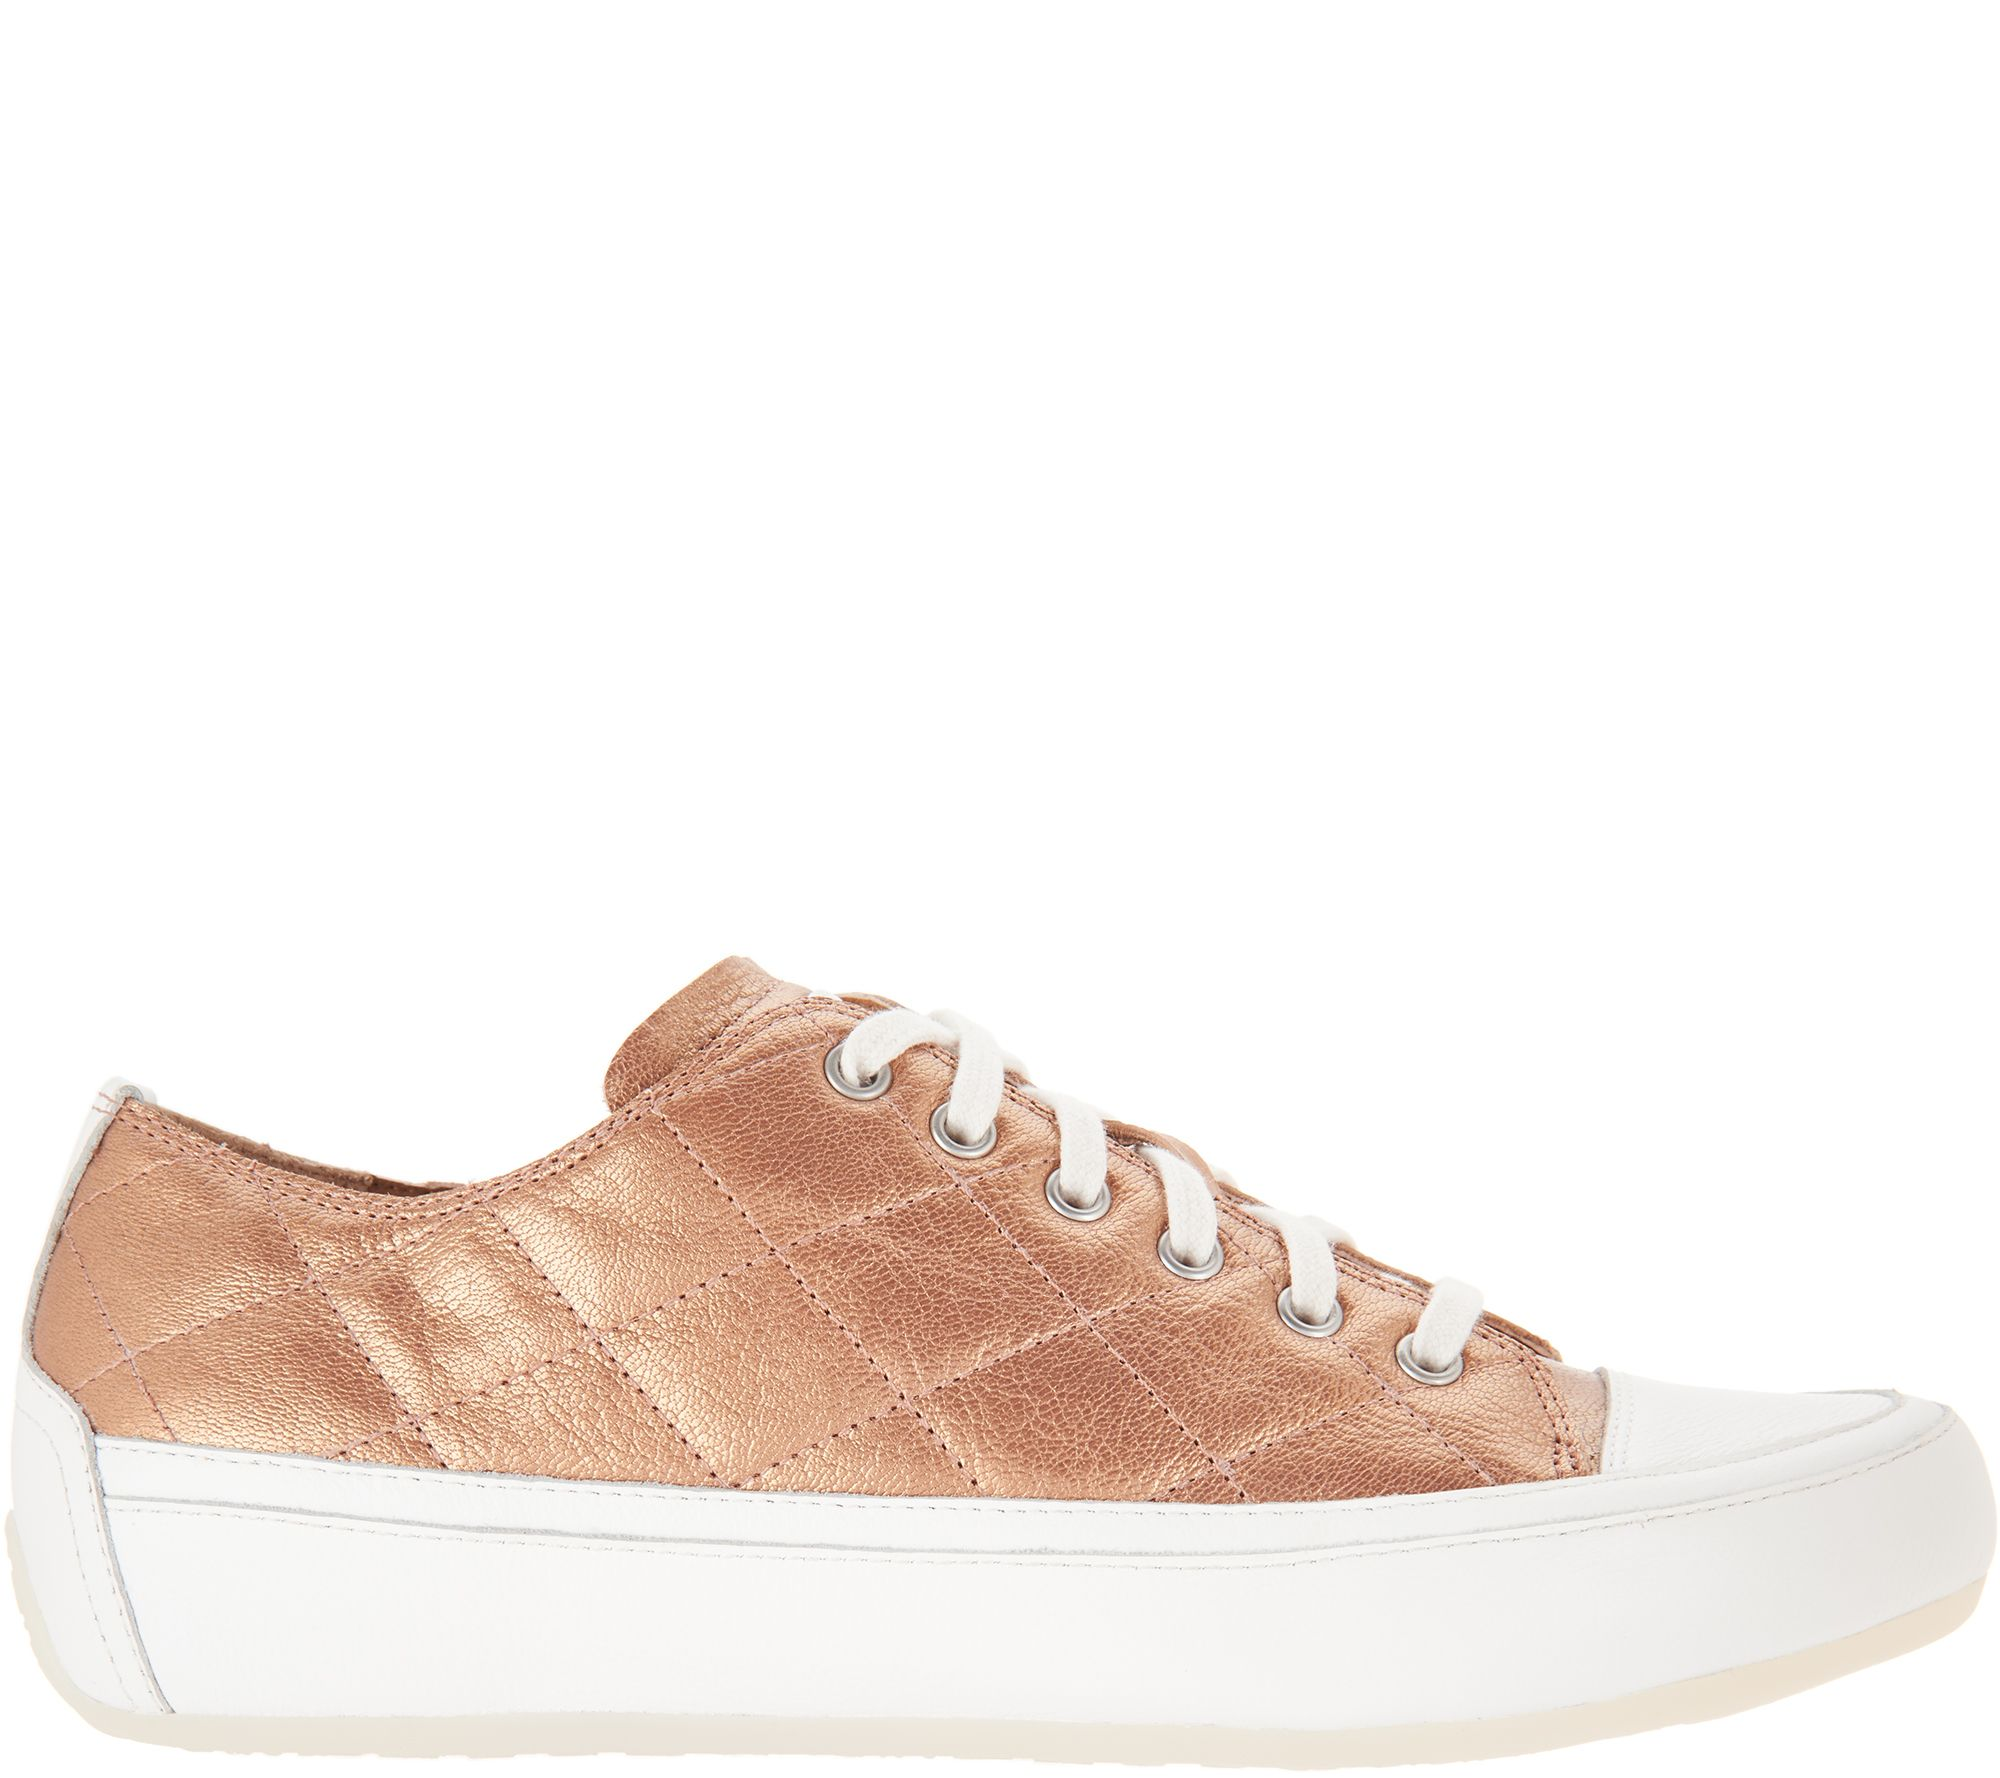 49c64fc809 Vionic Orthotic Quilted Lace-up Sneakers - Edie - Page 1 — QVC.com